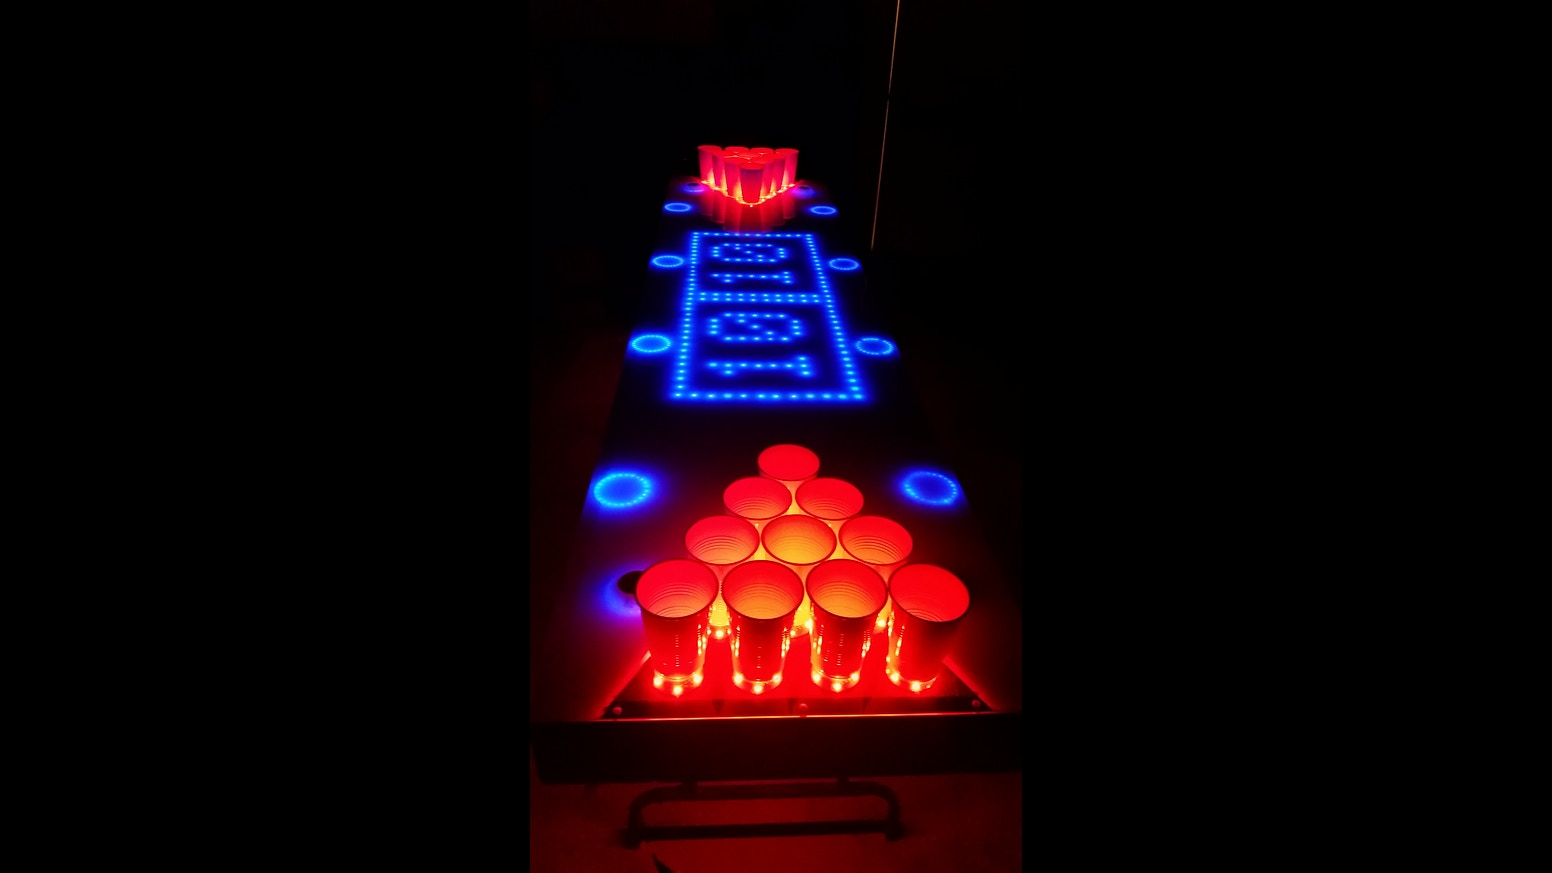 Led night light kickstarter - Introducing The Most Sophisticated Beer Pong Table Kit Ever Completely Open Source And Fully